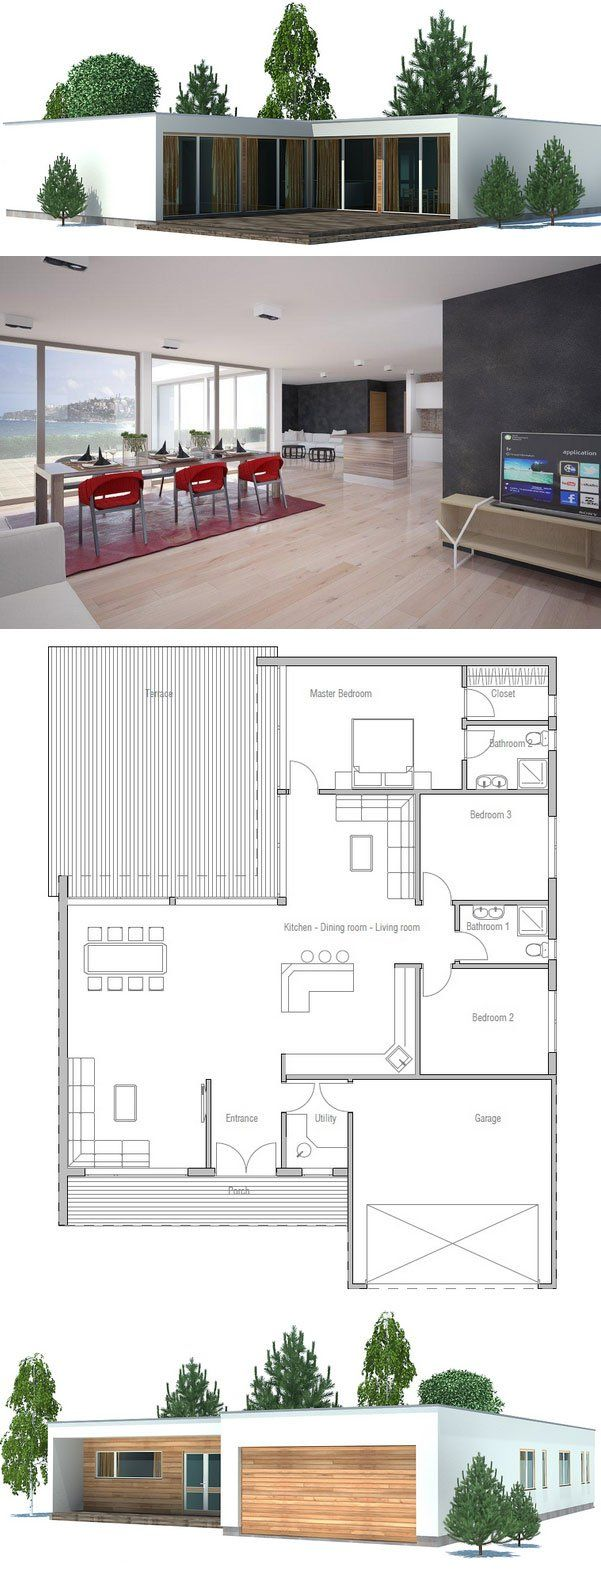 Cargotecture Floor Plans | Joy Studio Design Gallery - Best Design